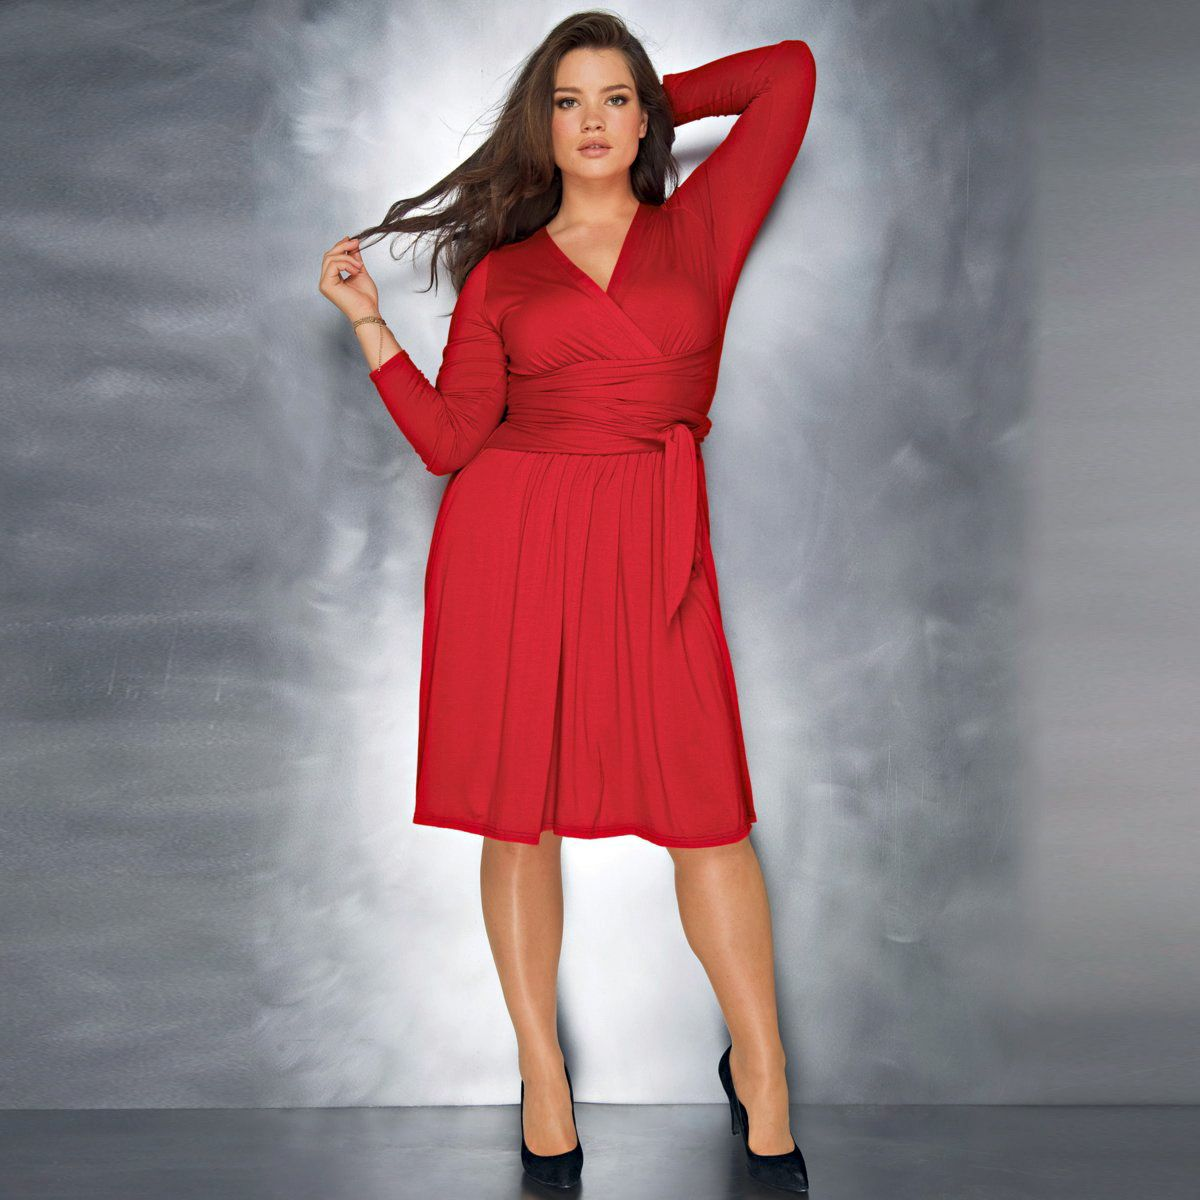 La redoute dress for christmas plus size and reasonably prized